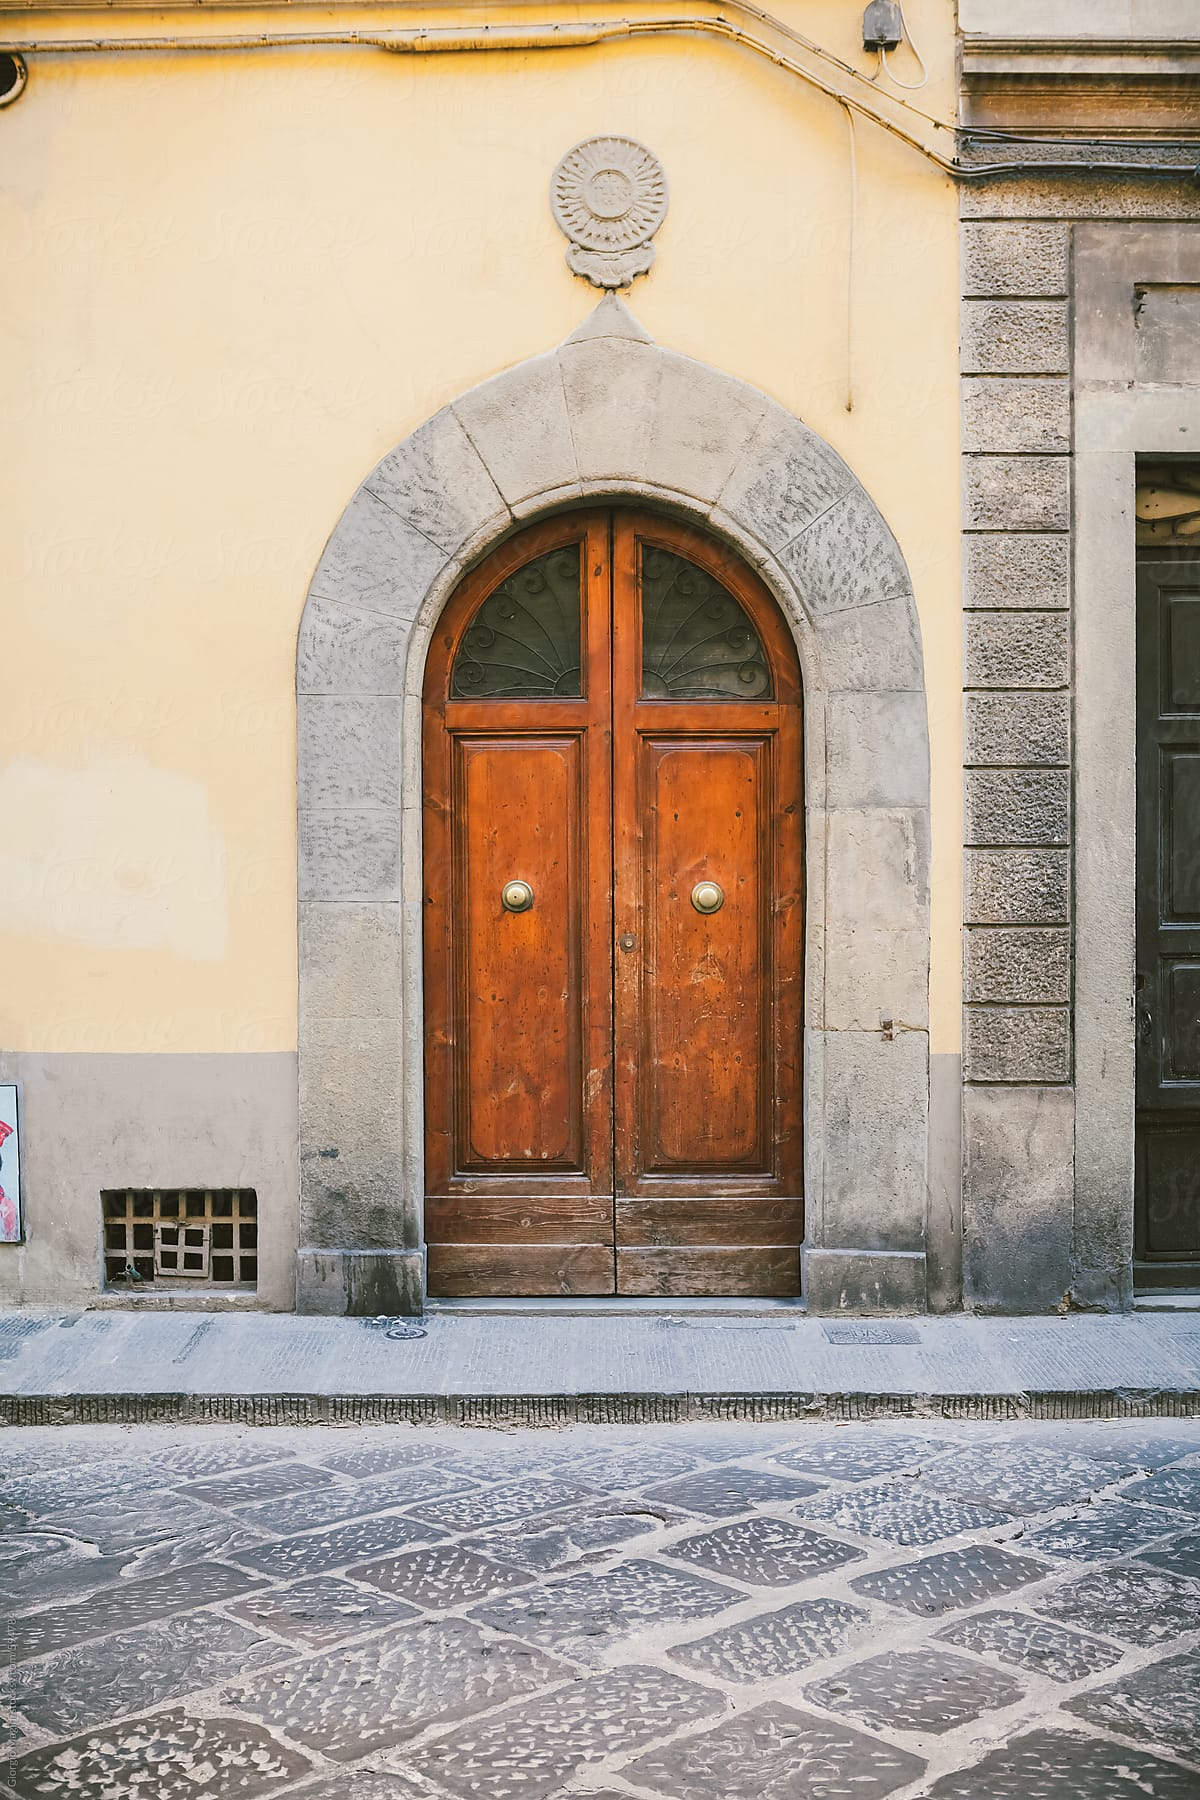 Wooden Door Of An Old Italian Palace By Giorgio Magini For Stocksy United